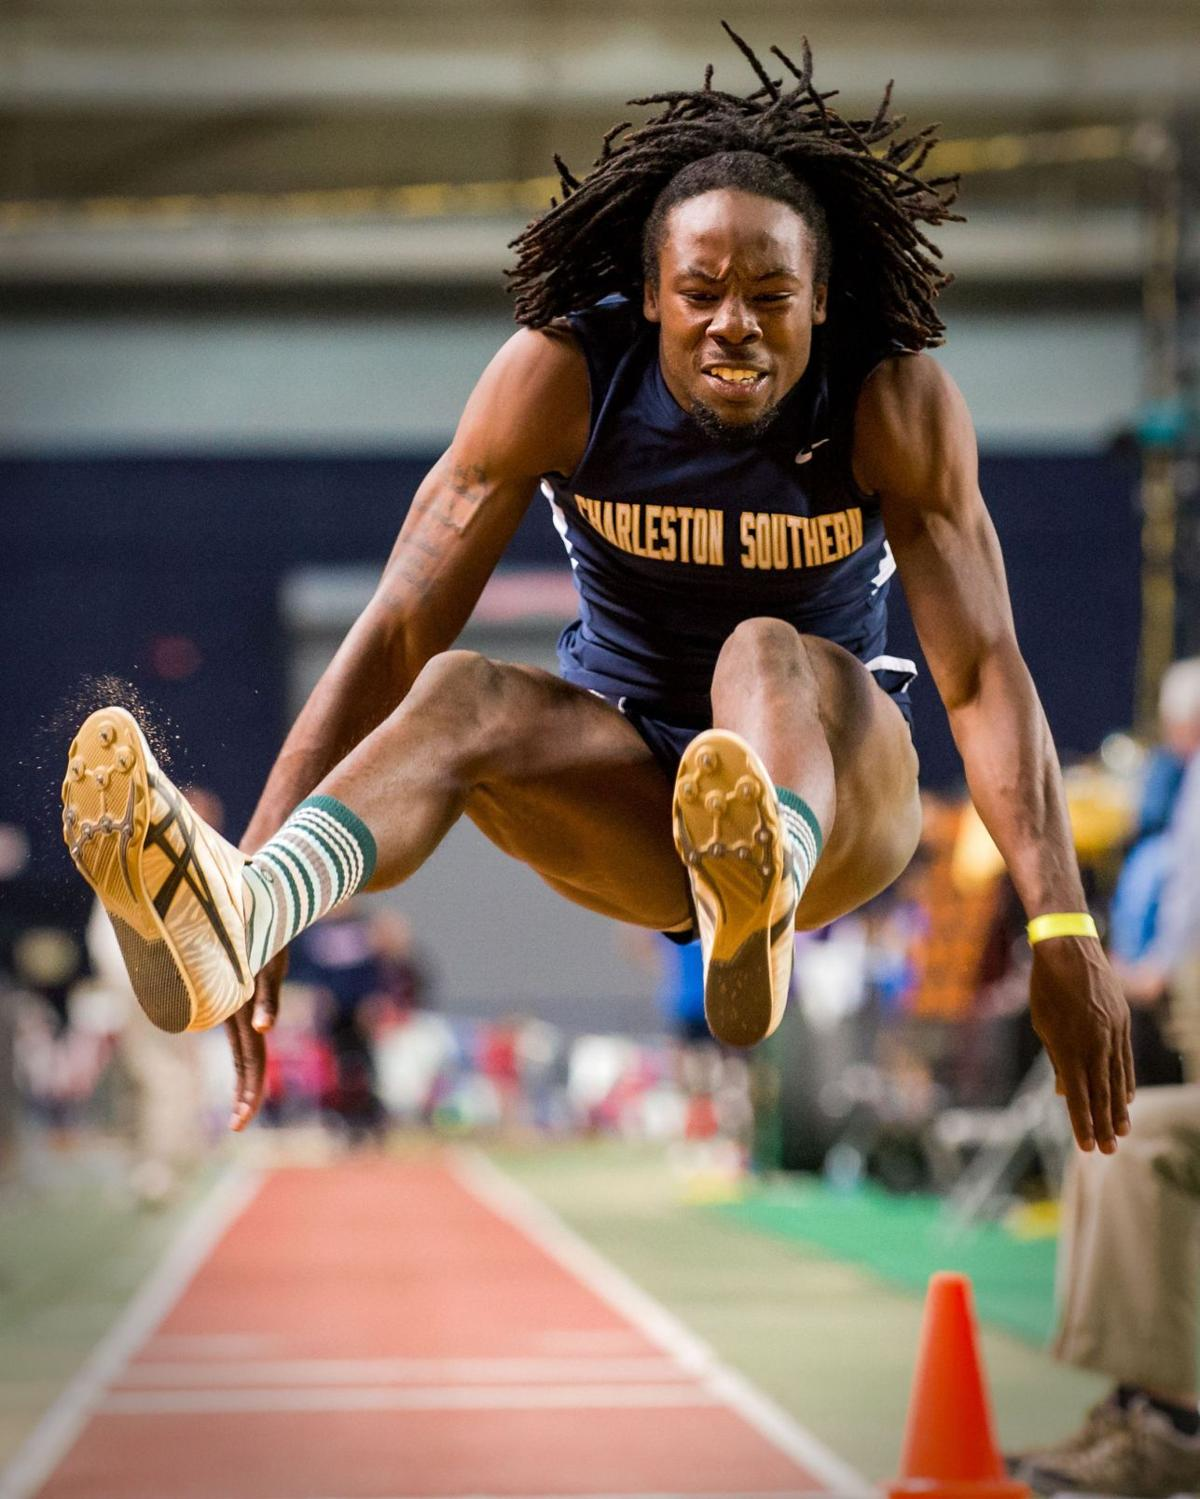 On the right track CSU long jumper Drummond glad he switched from football